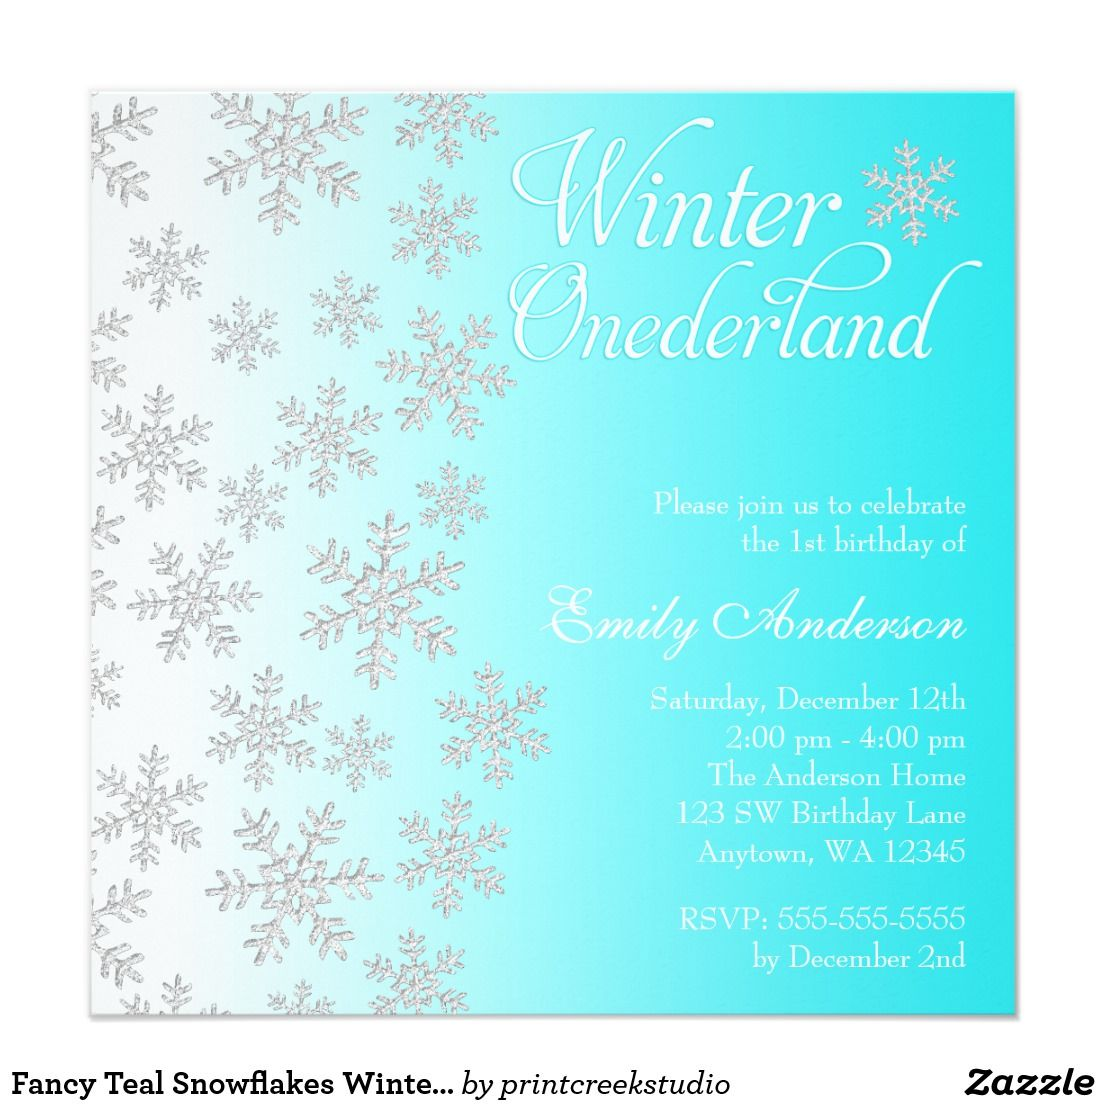 Fancy Teal Snowflakes Winter Onederland Birthday Card | Winter ...